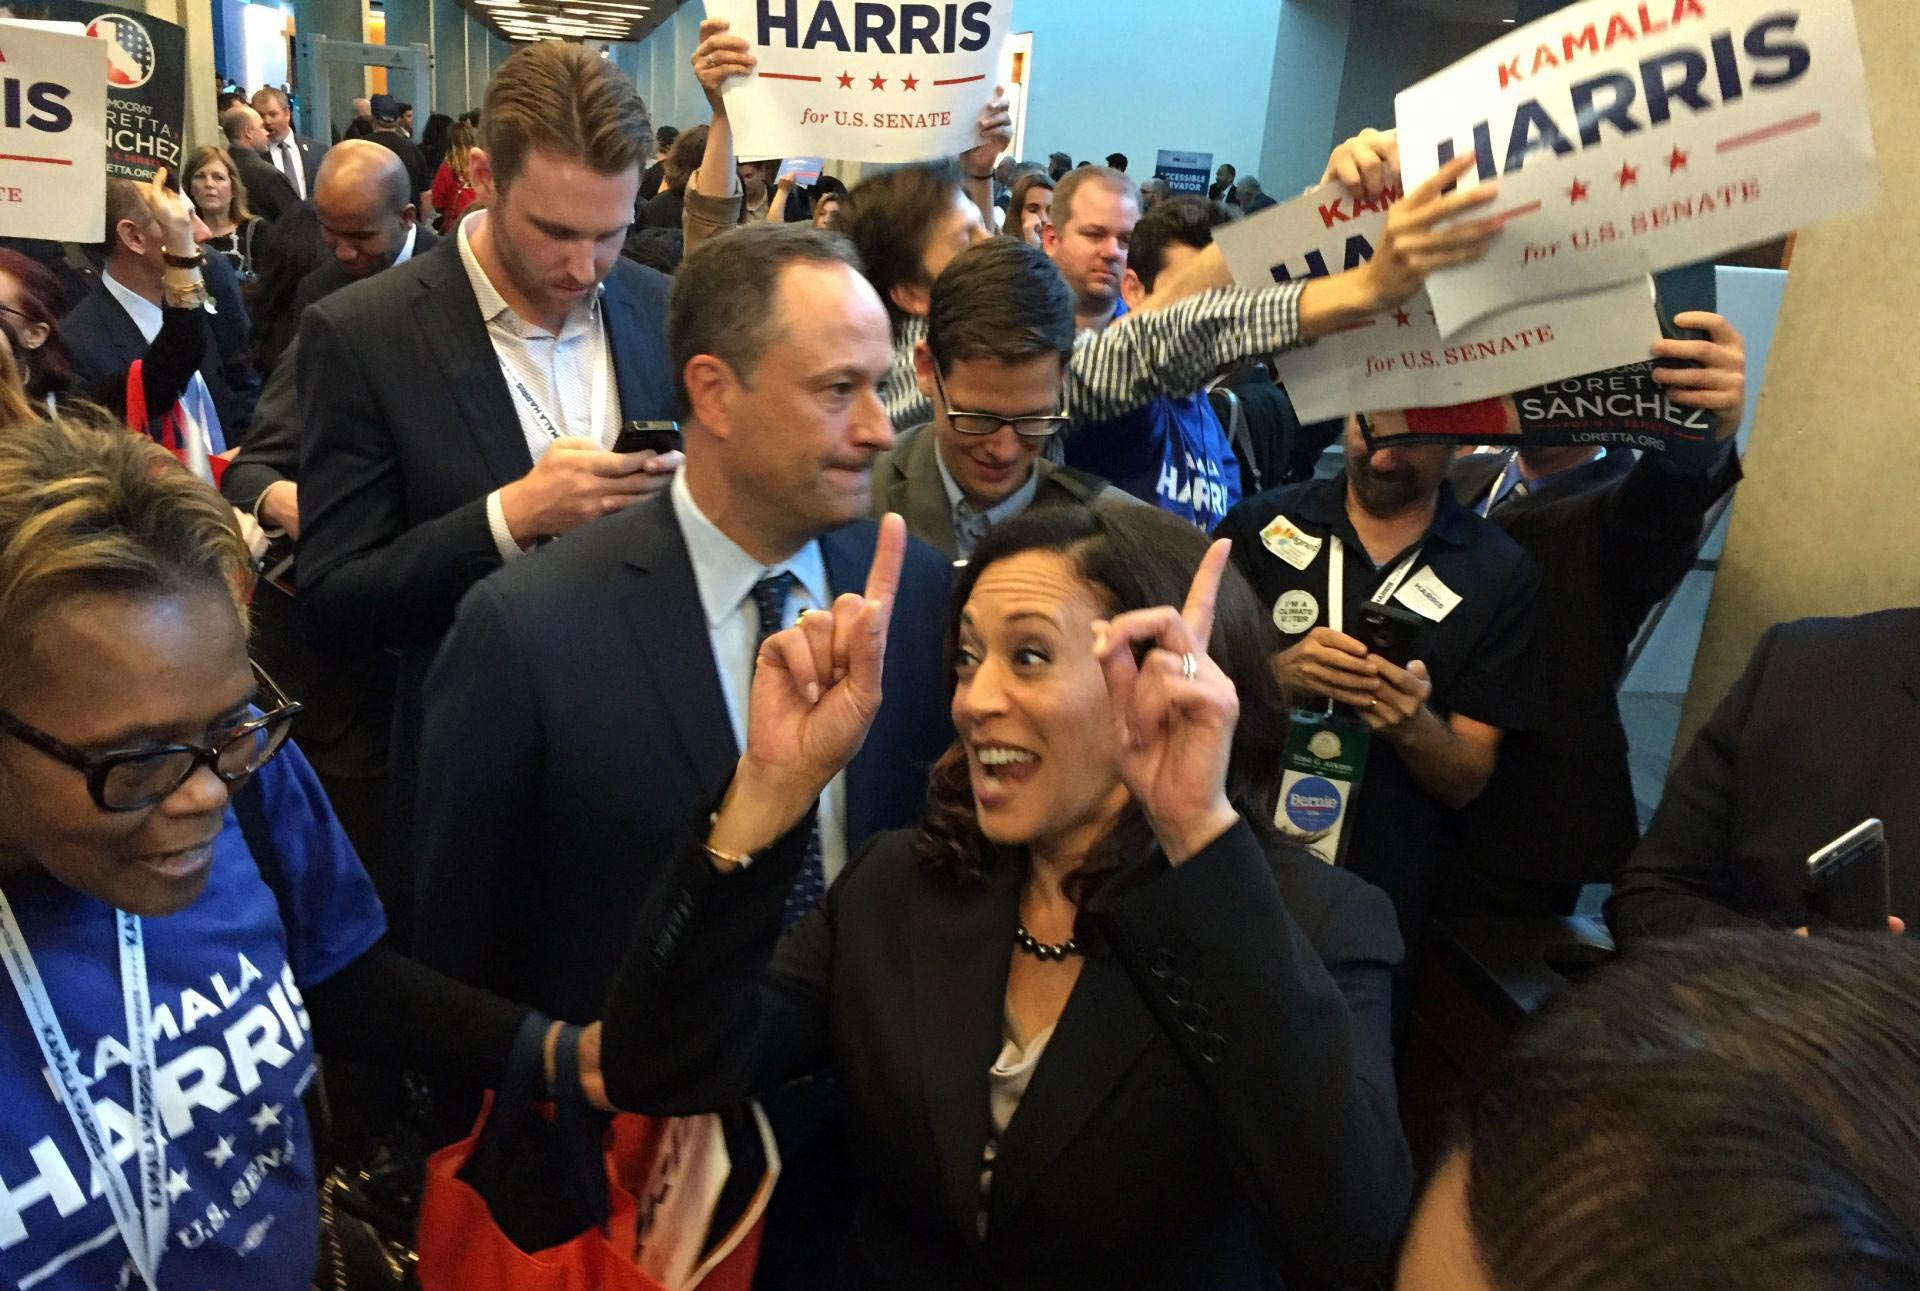 Attorney General Kamala Harris won an overwhelming endorsement from delegates at the State Democratic Party Convention this weekend in San Jose.